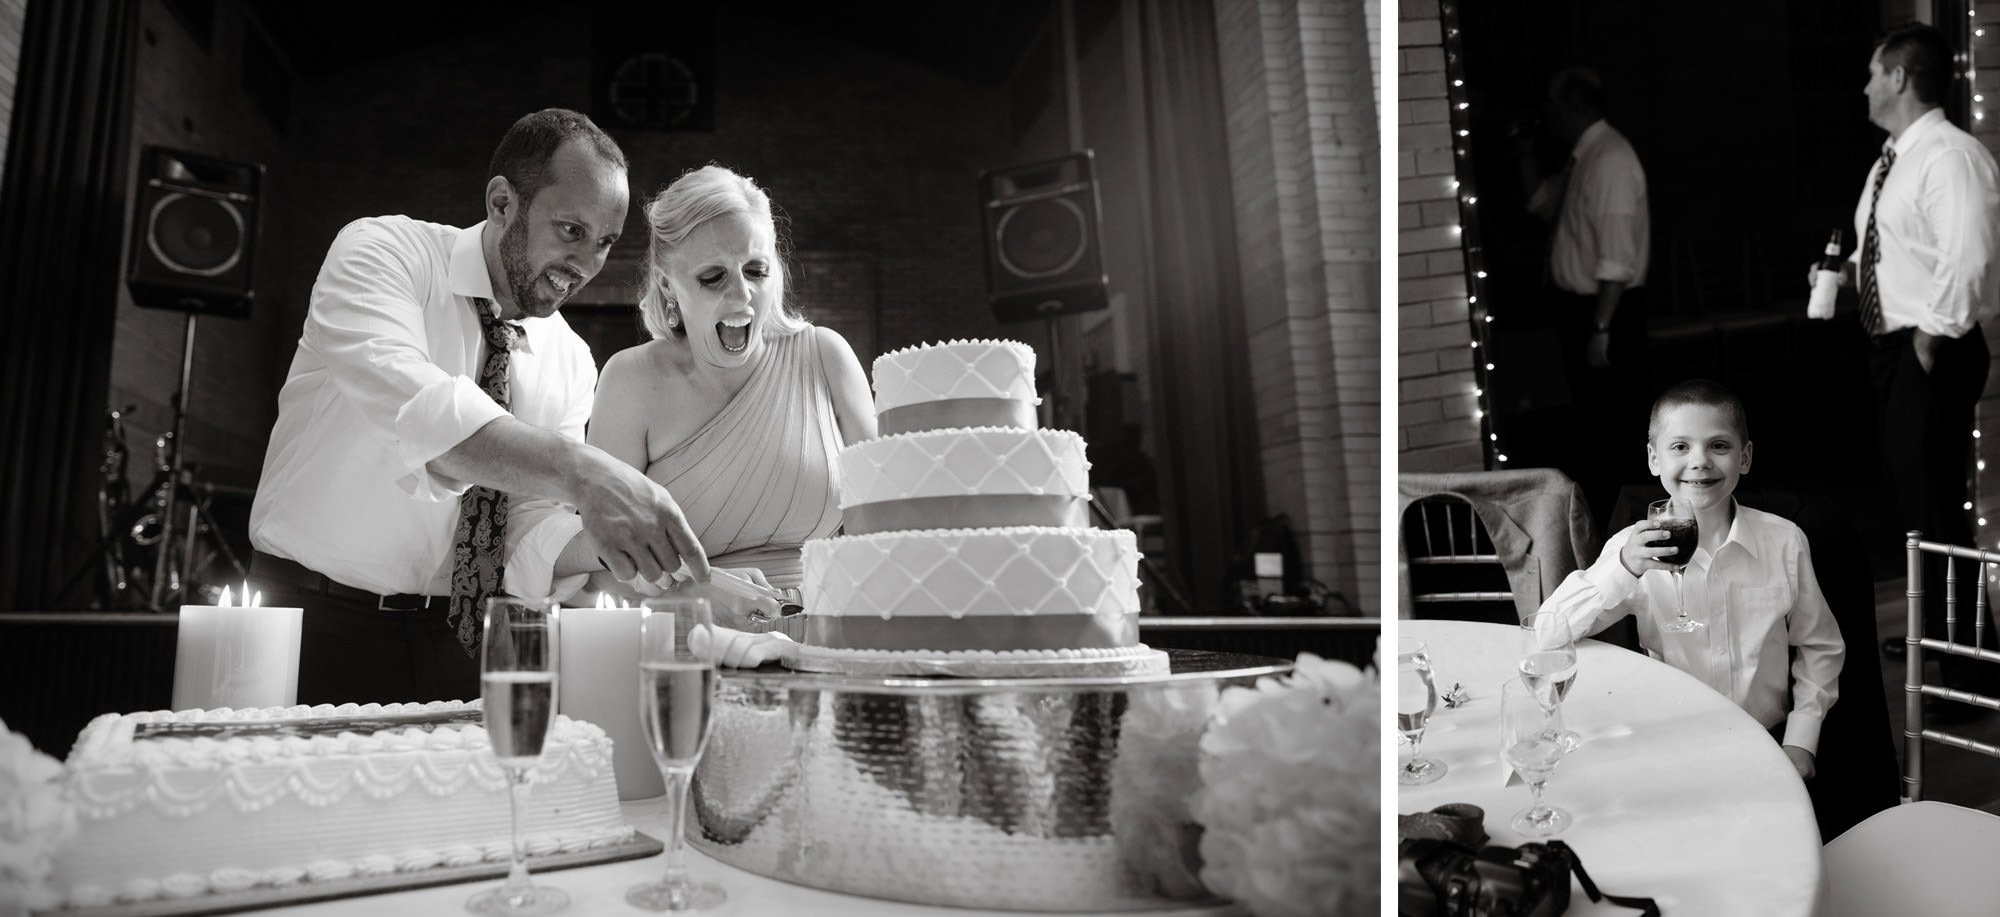 The bride and groom cut their wedding cake in St Francis Hall.